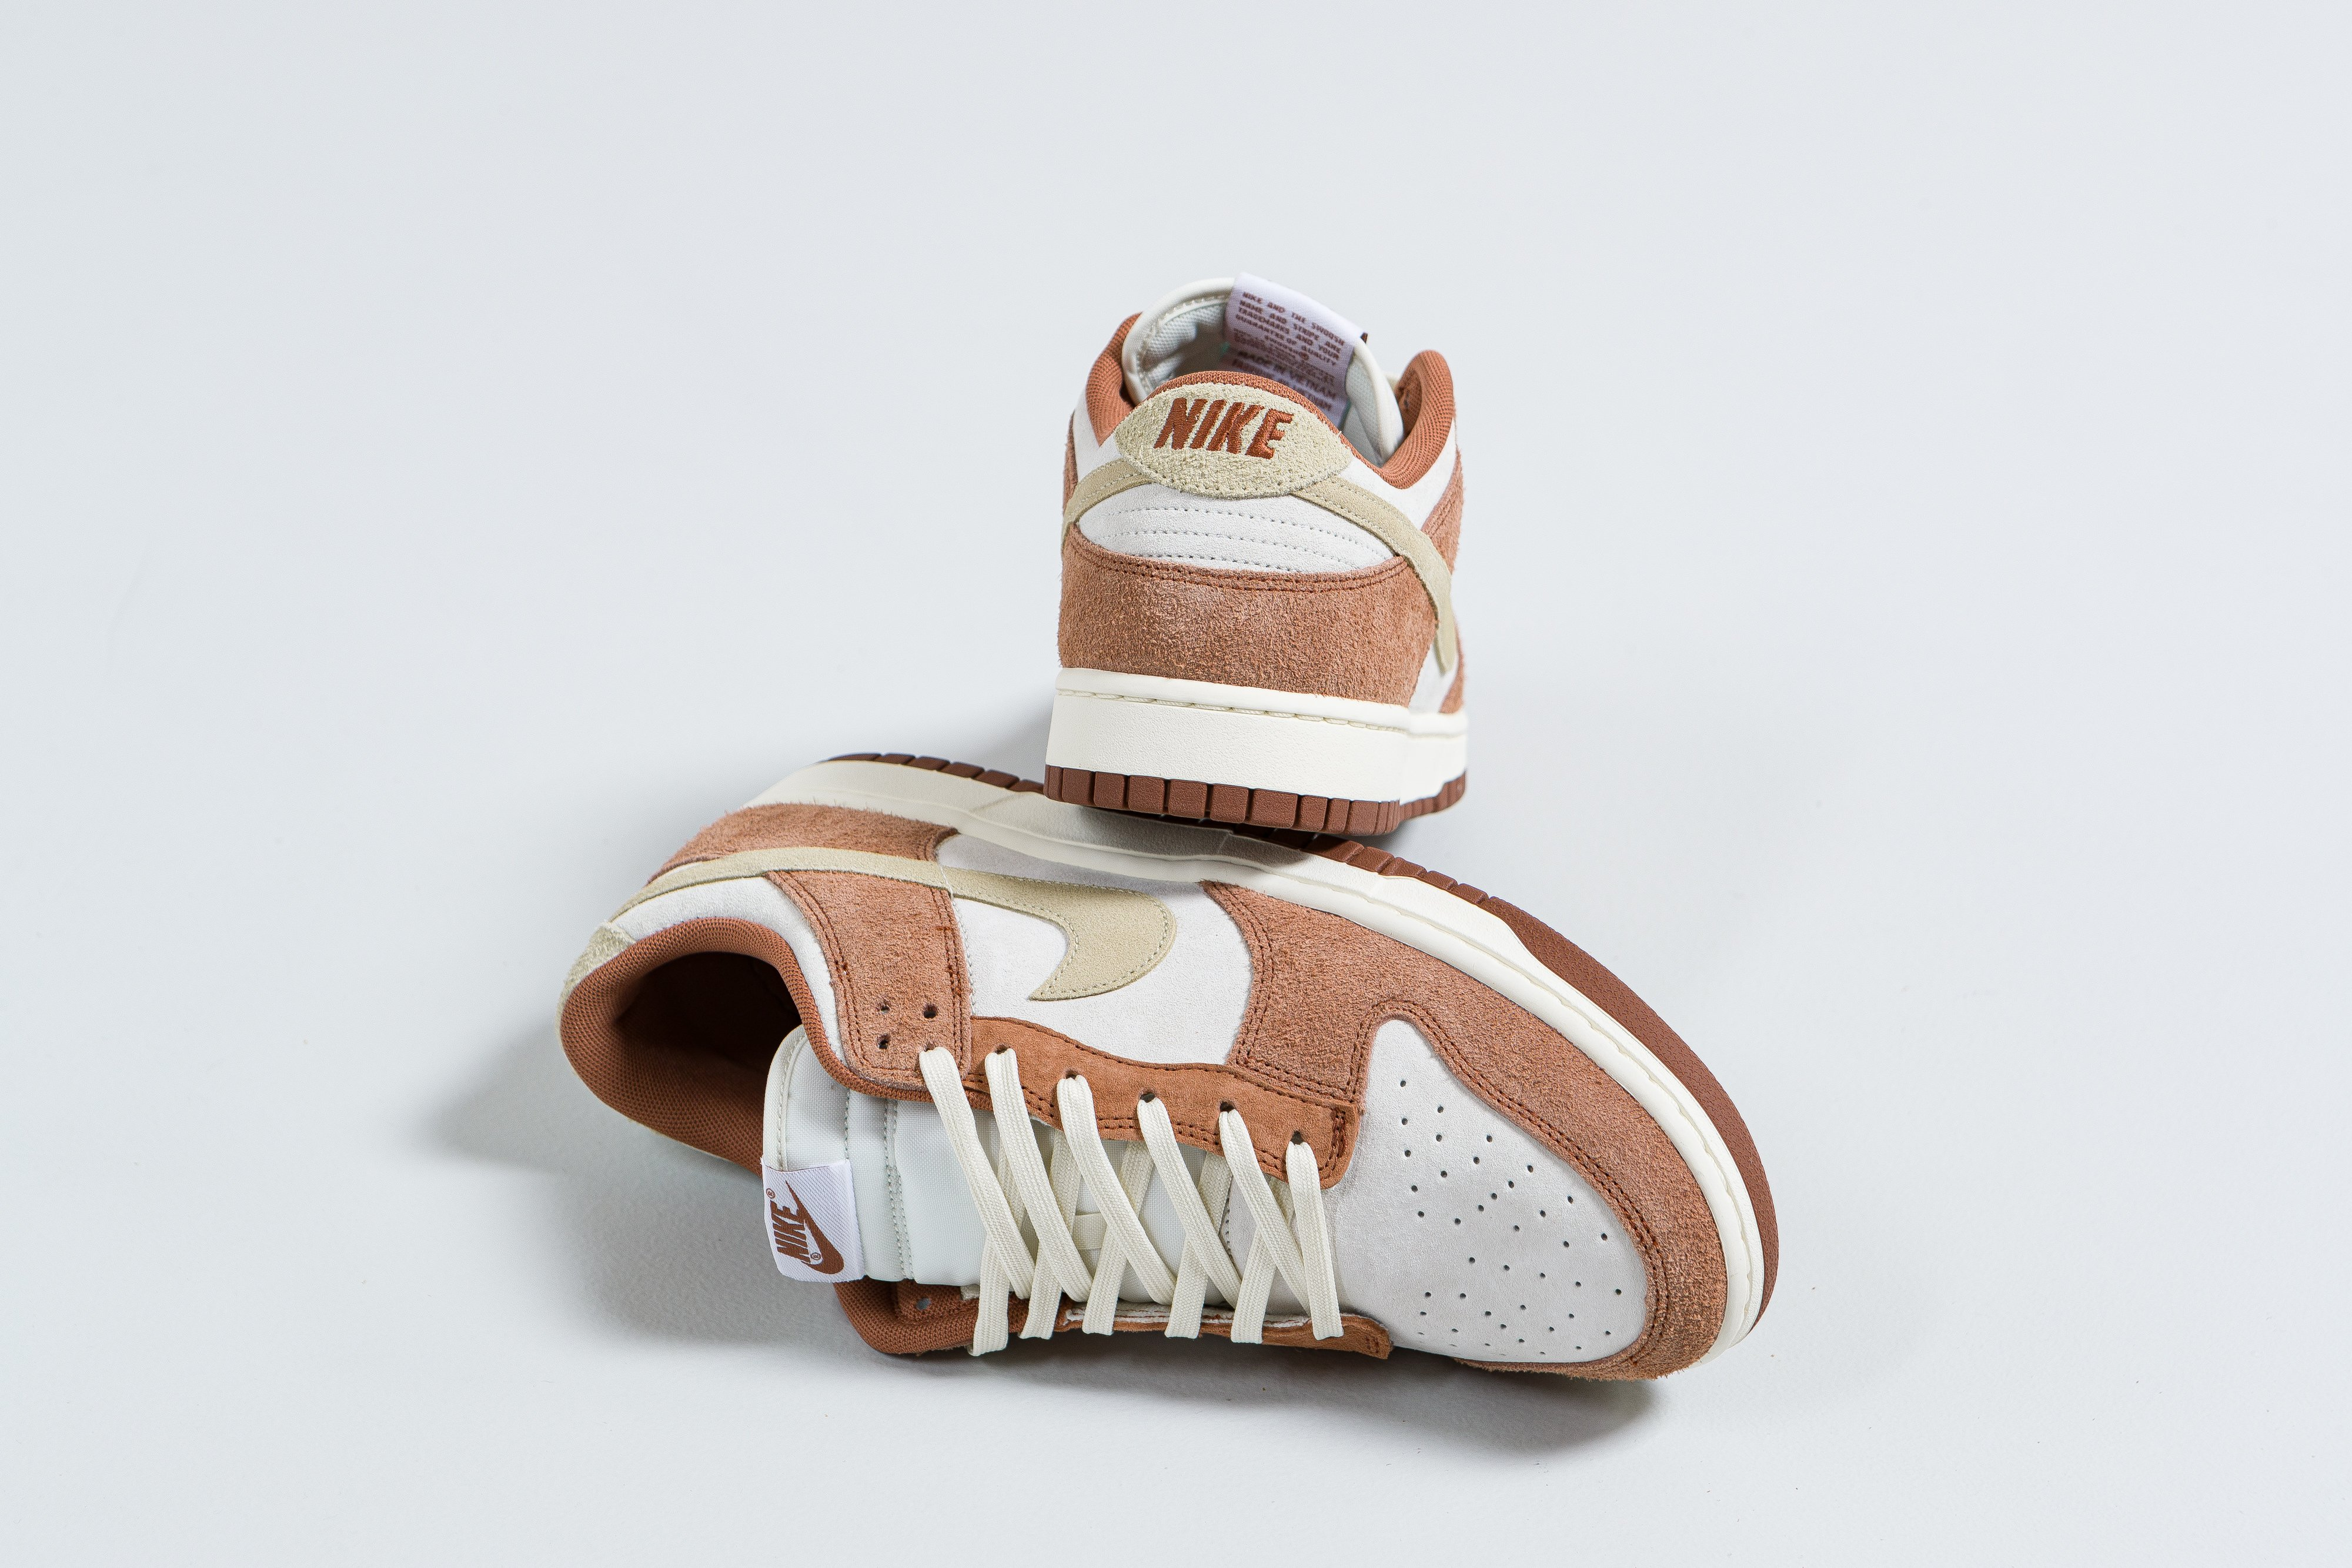 Nike - Dunk Low Retro PRM - 'Medium Curry' - Up There